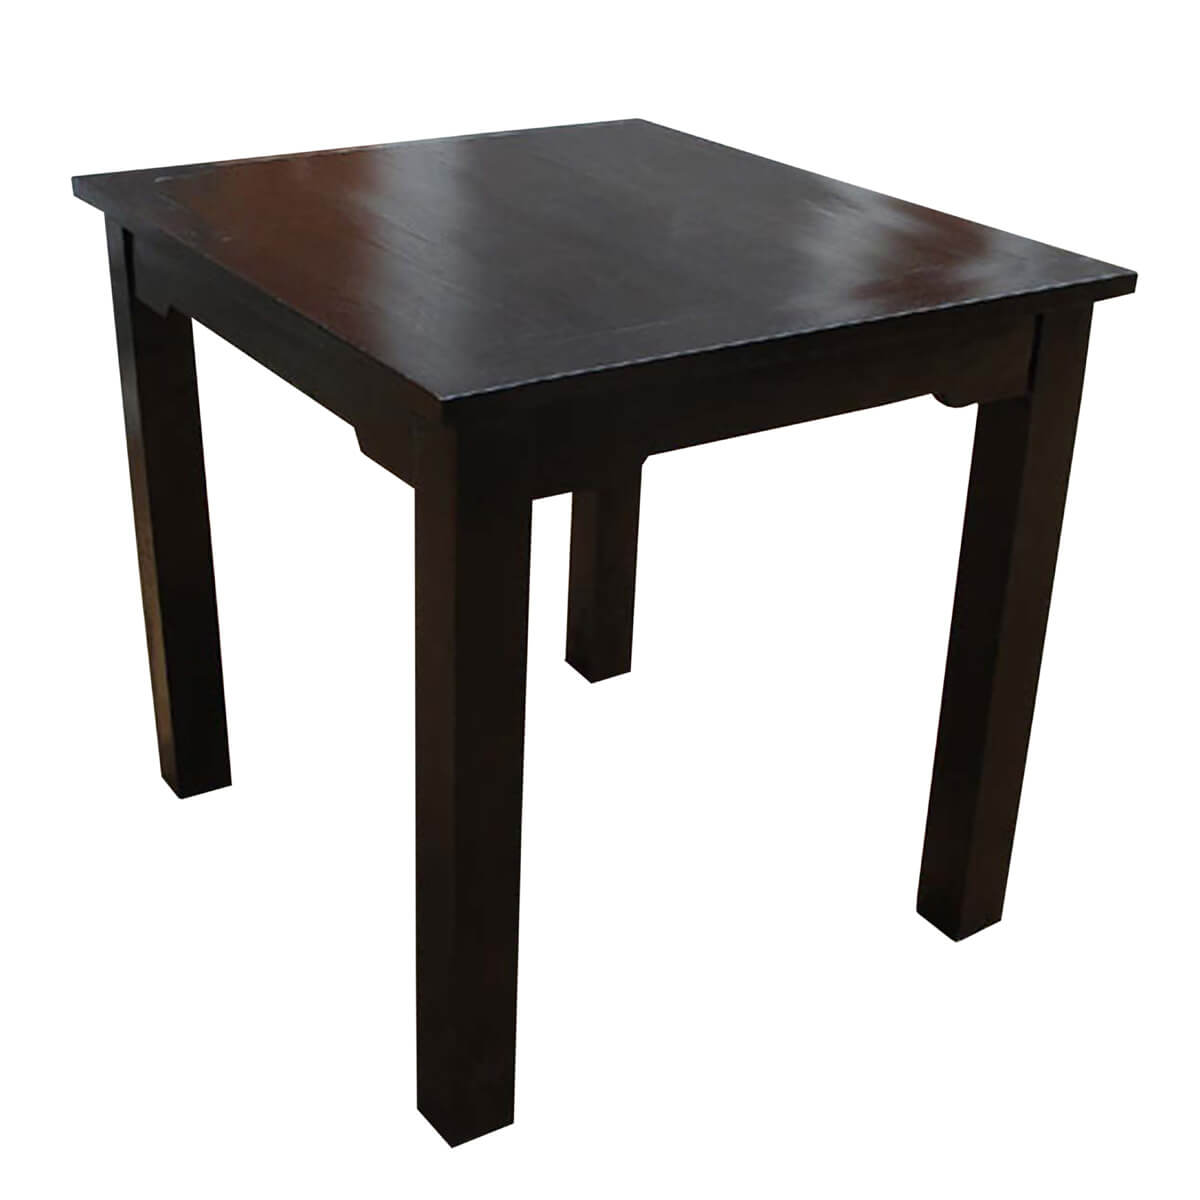 Casual Square Dining Table W Ebony Finish Made Of Solid Wood